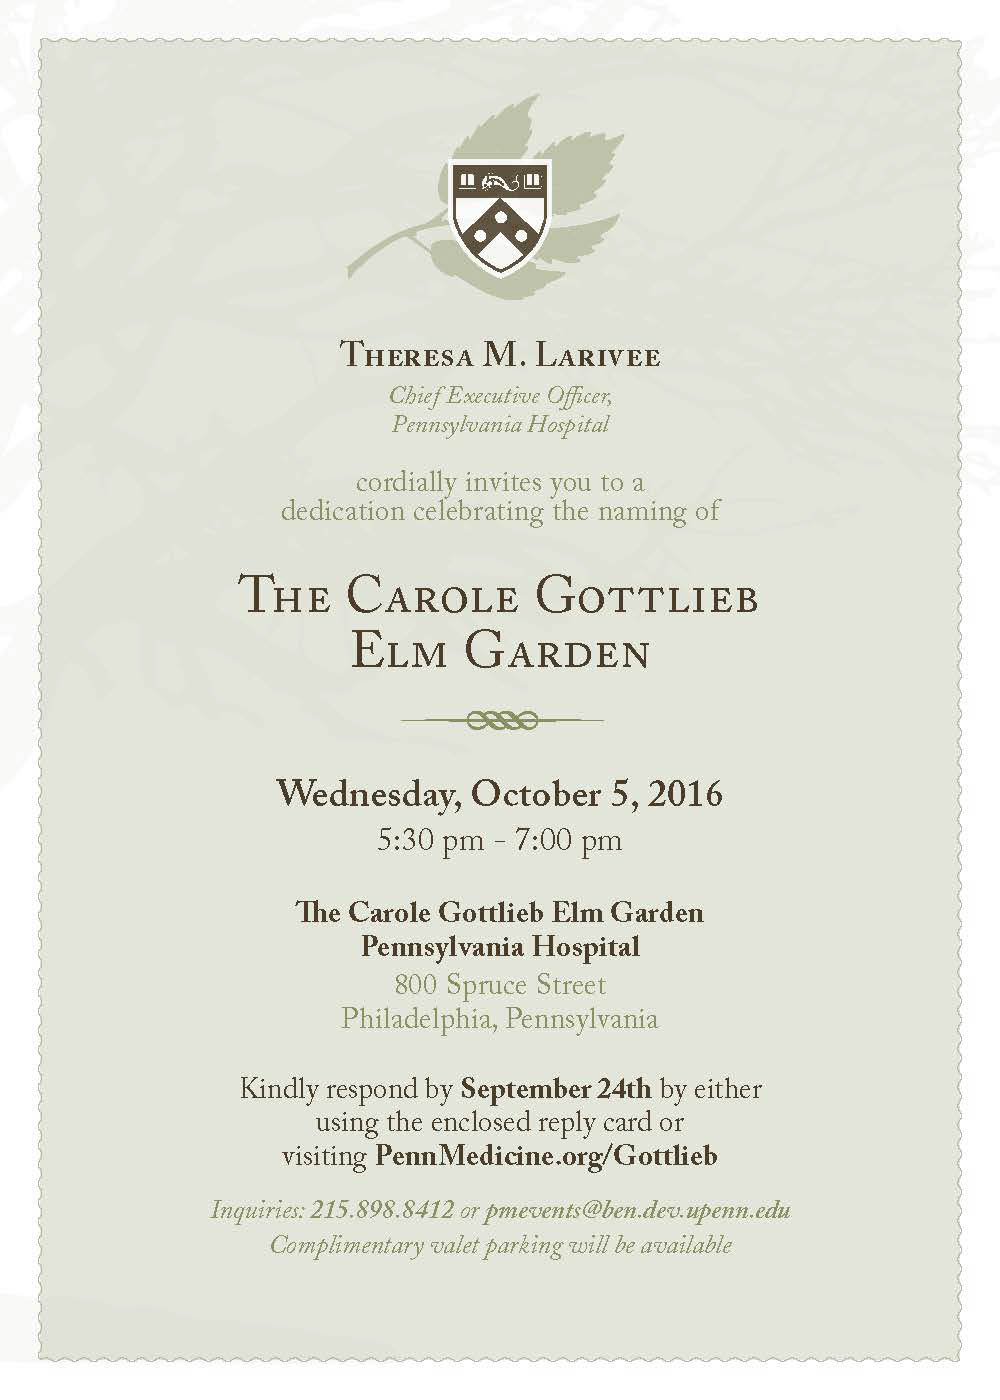 Penn Medicine Gottlieb Invitation and Email Graphic on Behance